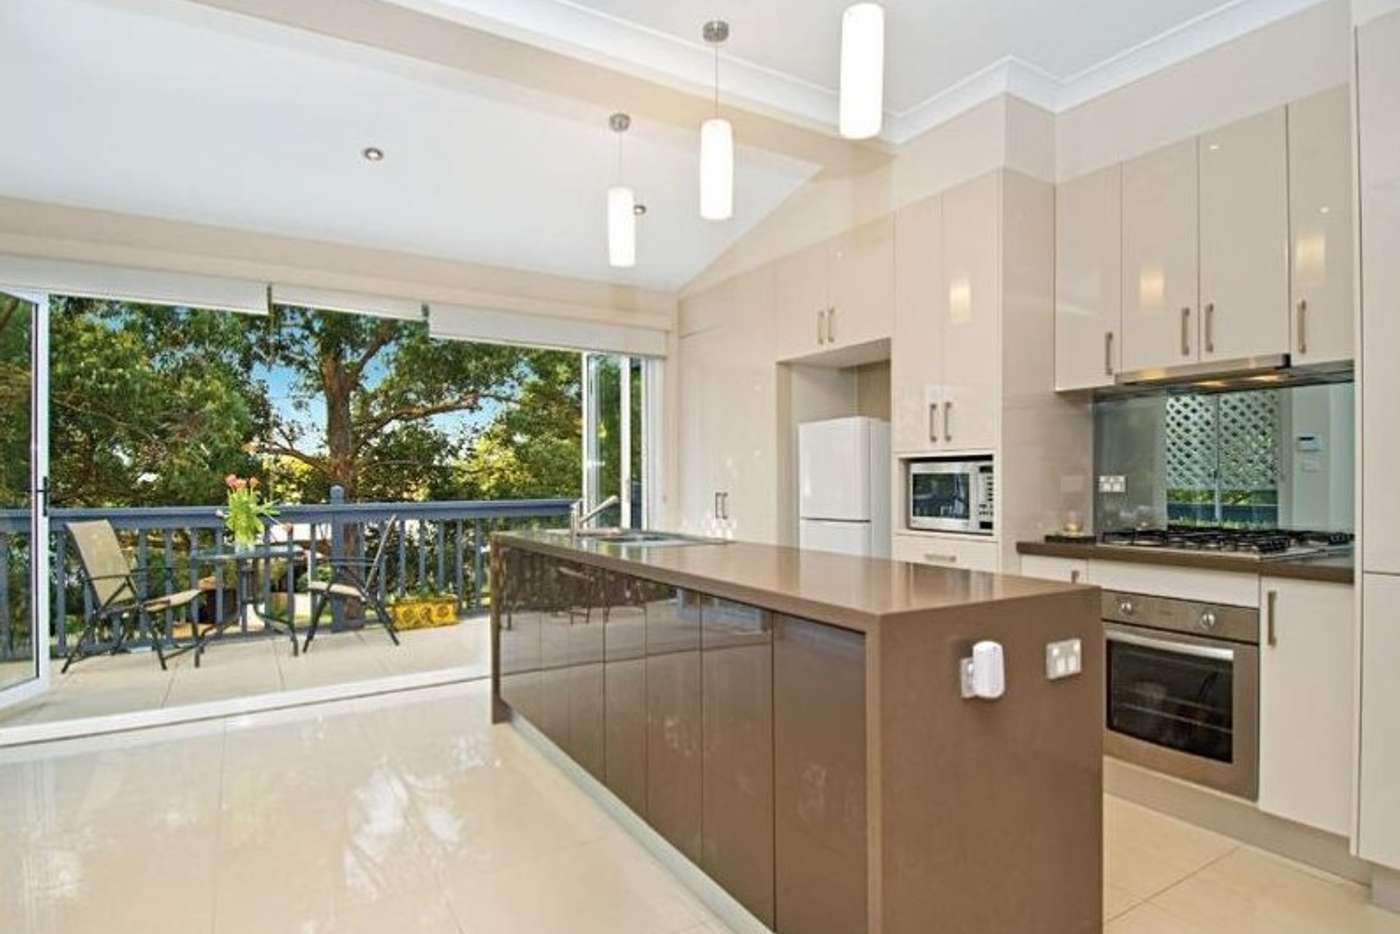 Main view of Homely house listing, 15 Figtree Road, Hunters Hill NSW 2110